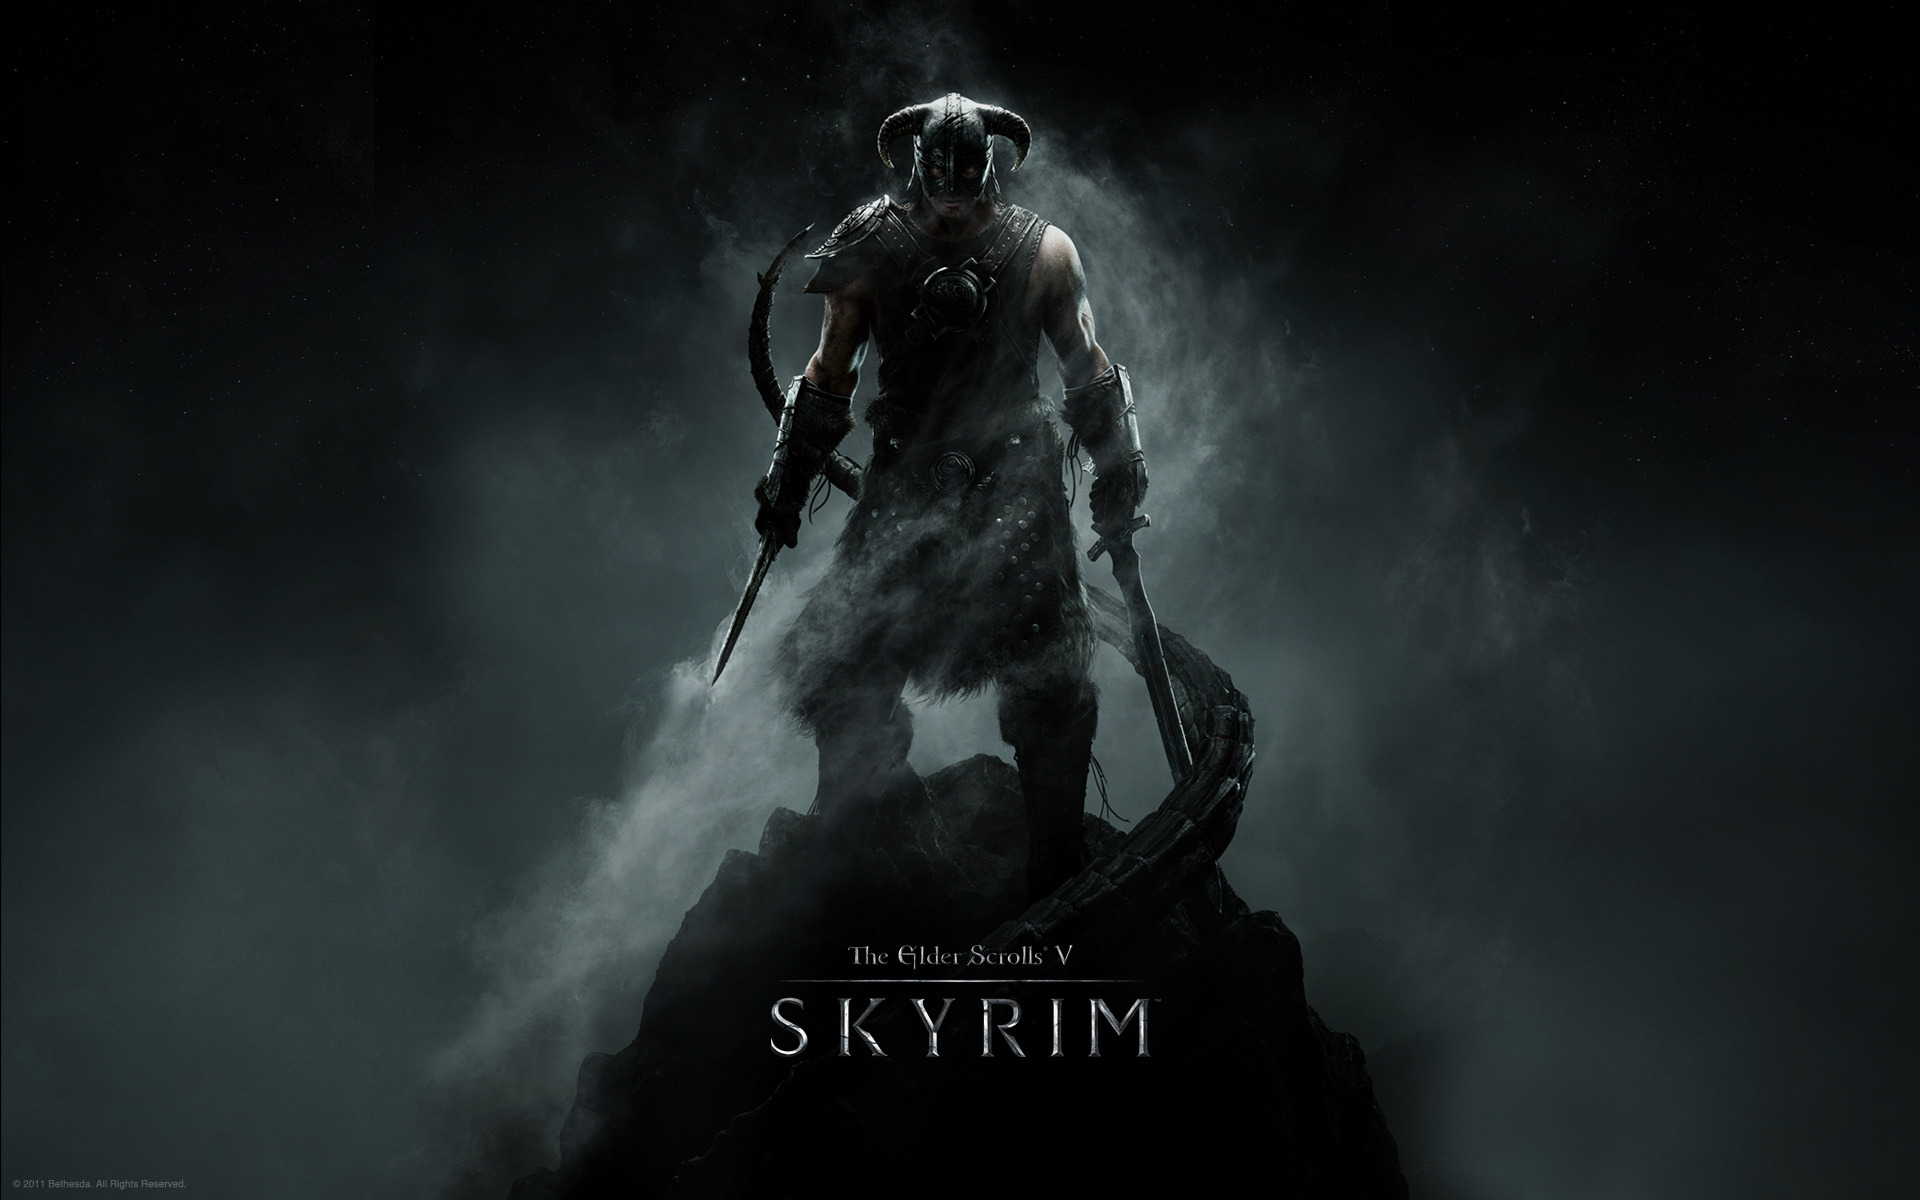 The Elder Scrolls V: Skyrim wallpaper Warrior in the Mist